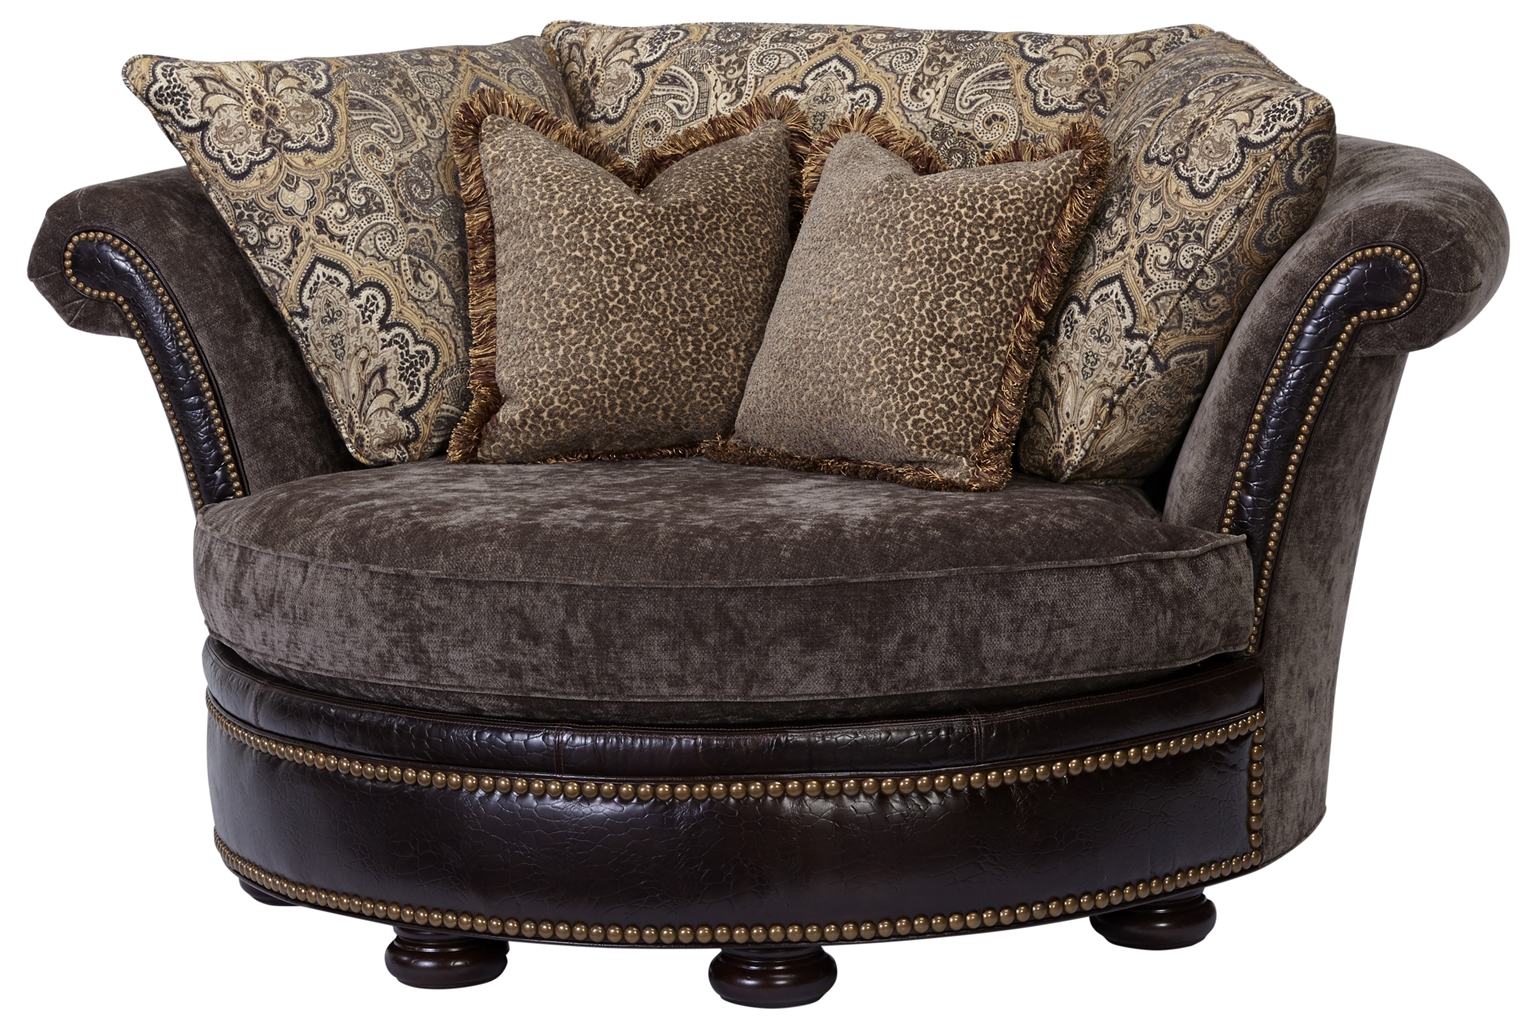 Luxury Leather u0026 Upholstered Furniture Round chaise lounge 2254  sc 1 st  Bernadette Livingston : round chaise lounge - Sectionals, Sofas & Couches